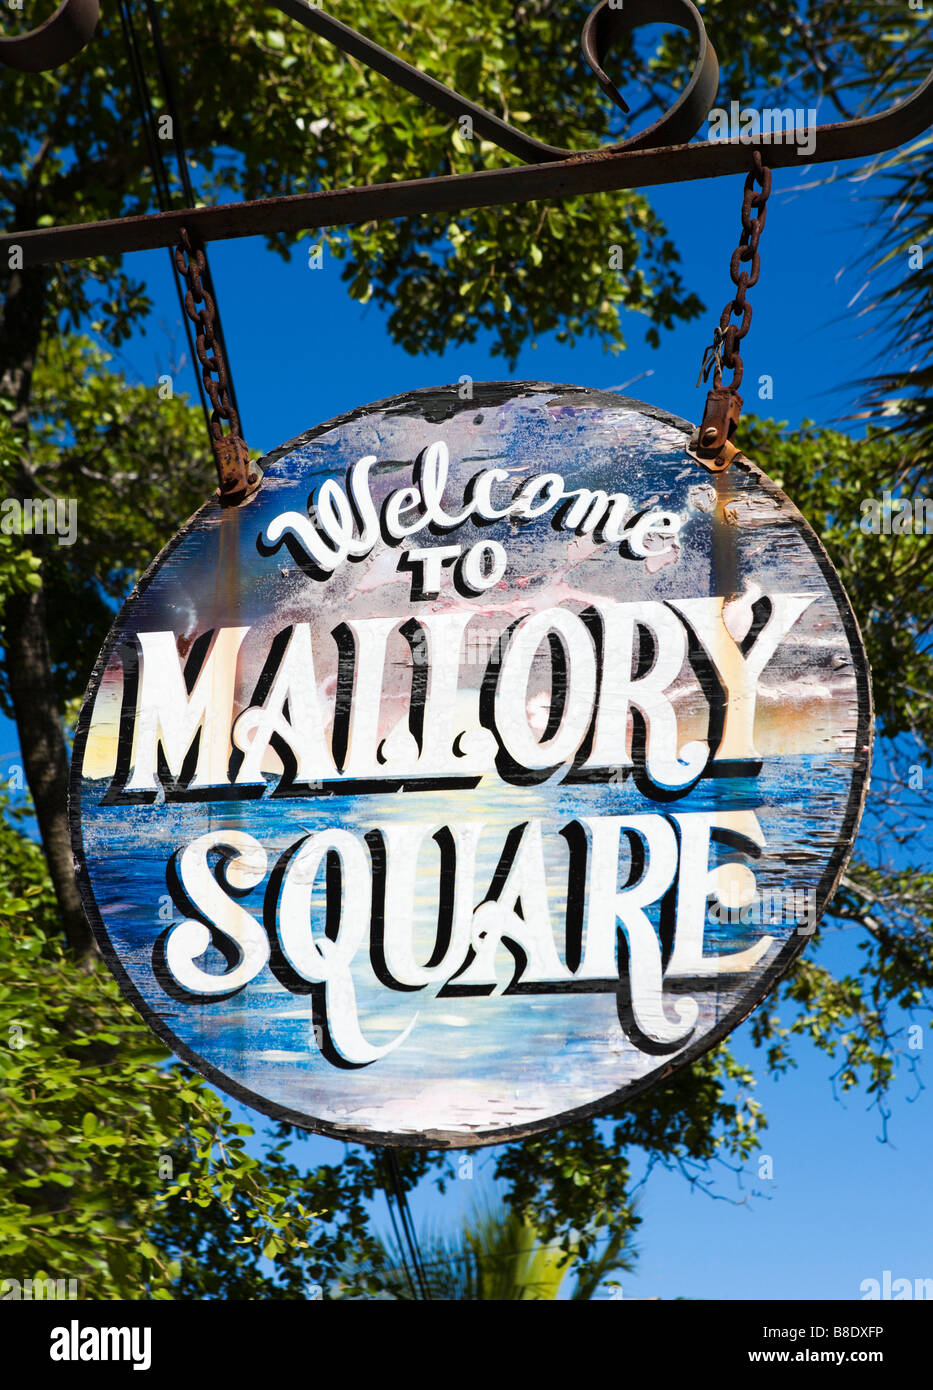 Welcome to Mallory Square hanging sign, Old Town, Key West, Florida Keys, USA - Stock Image